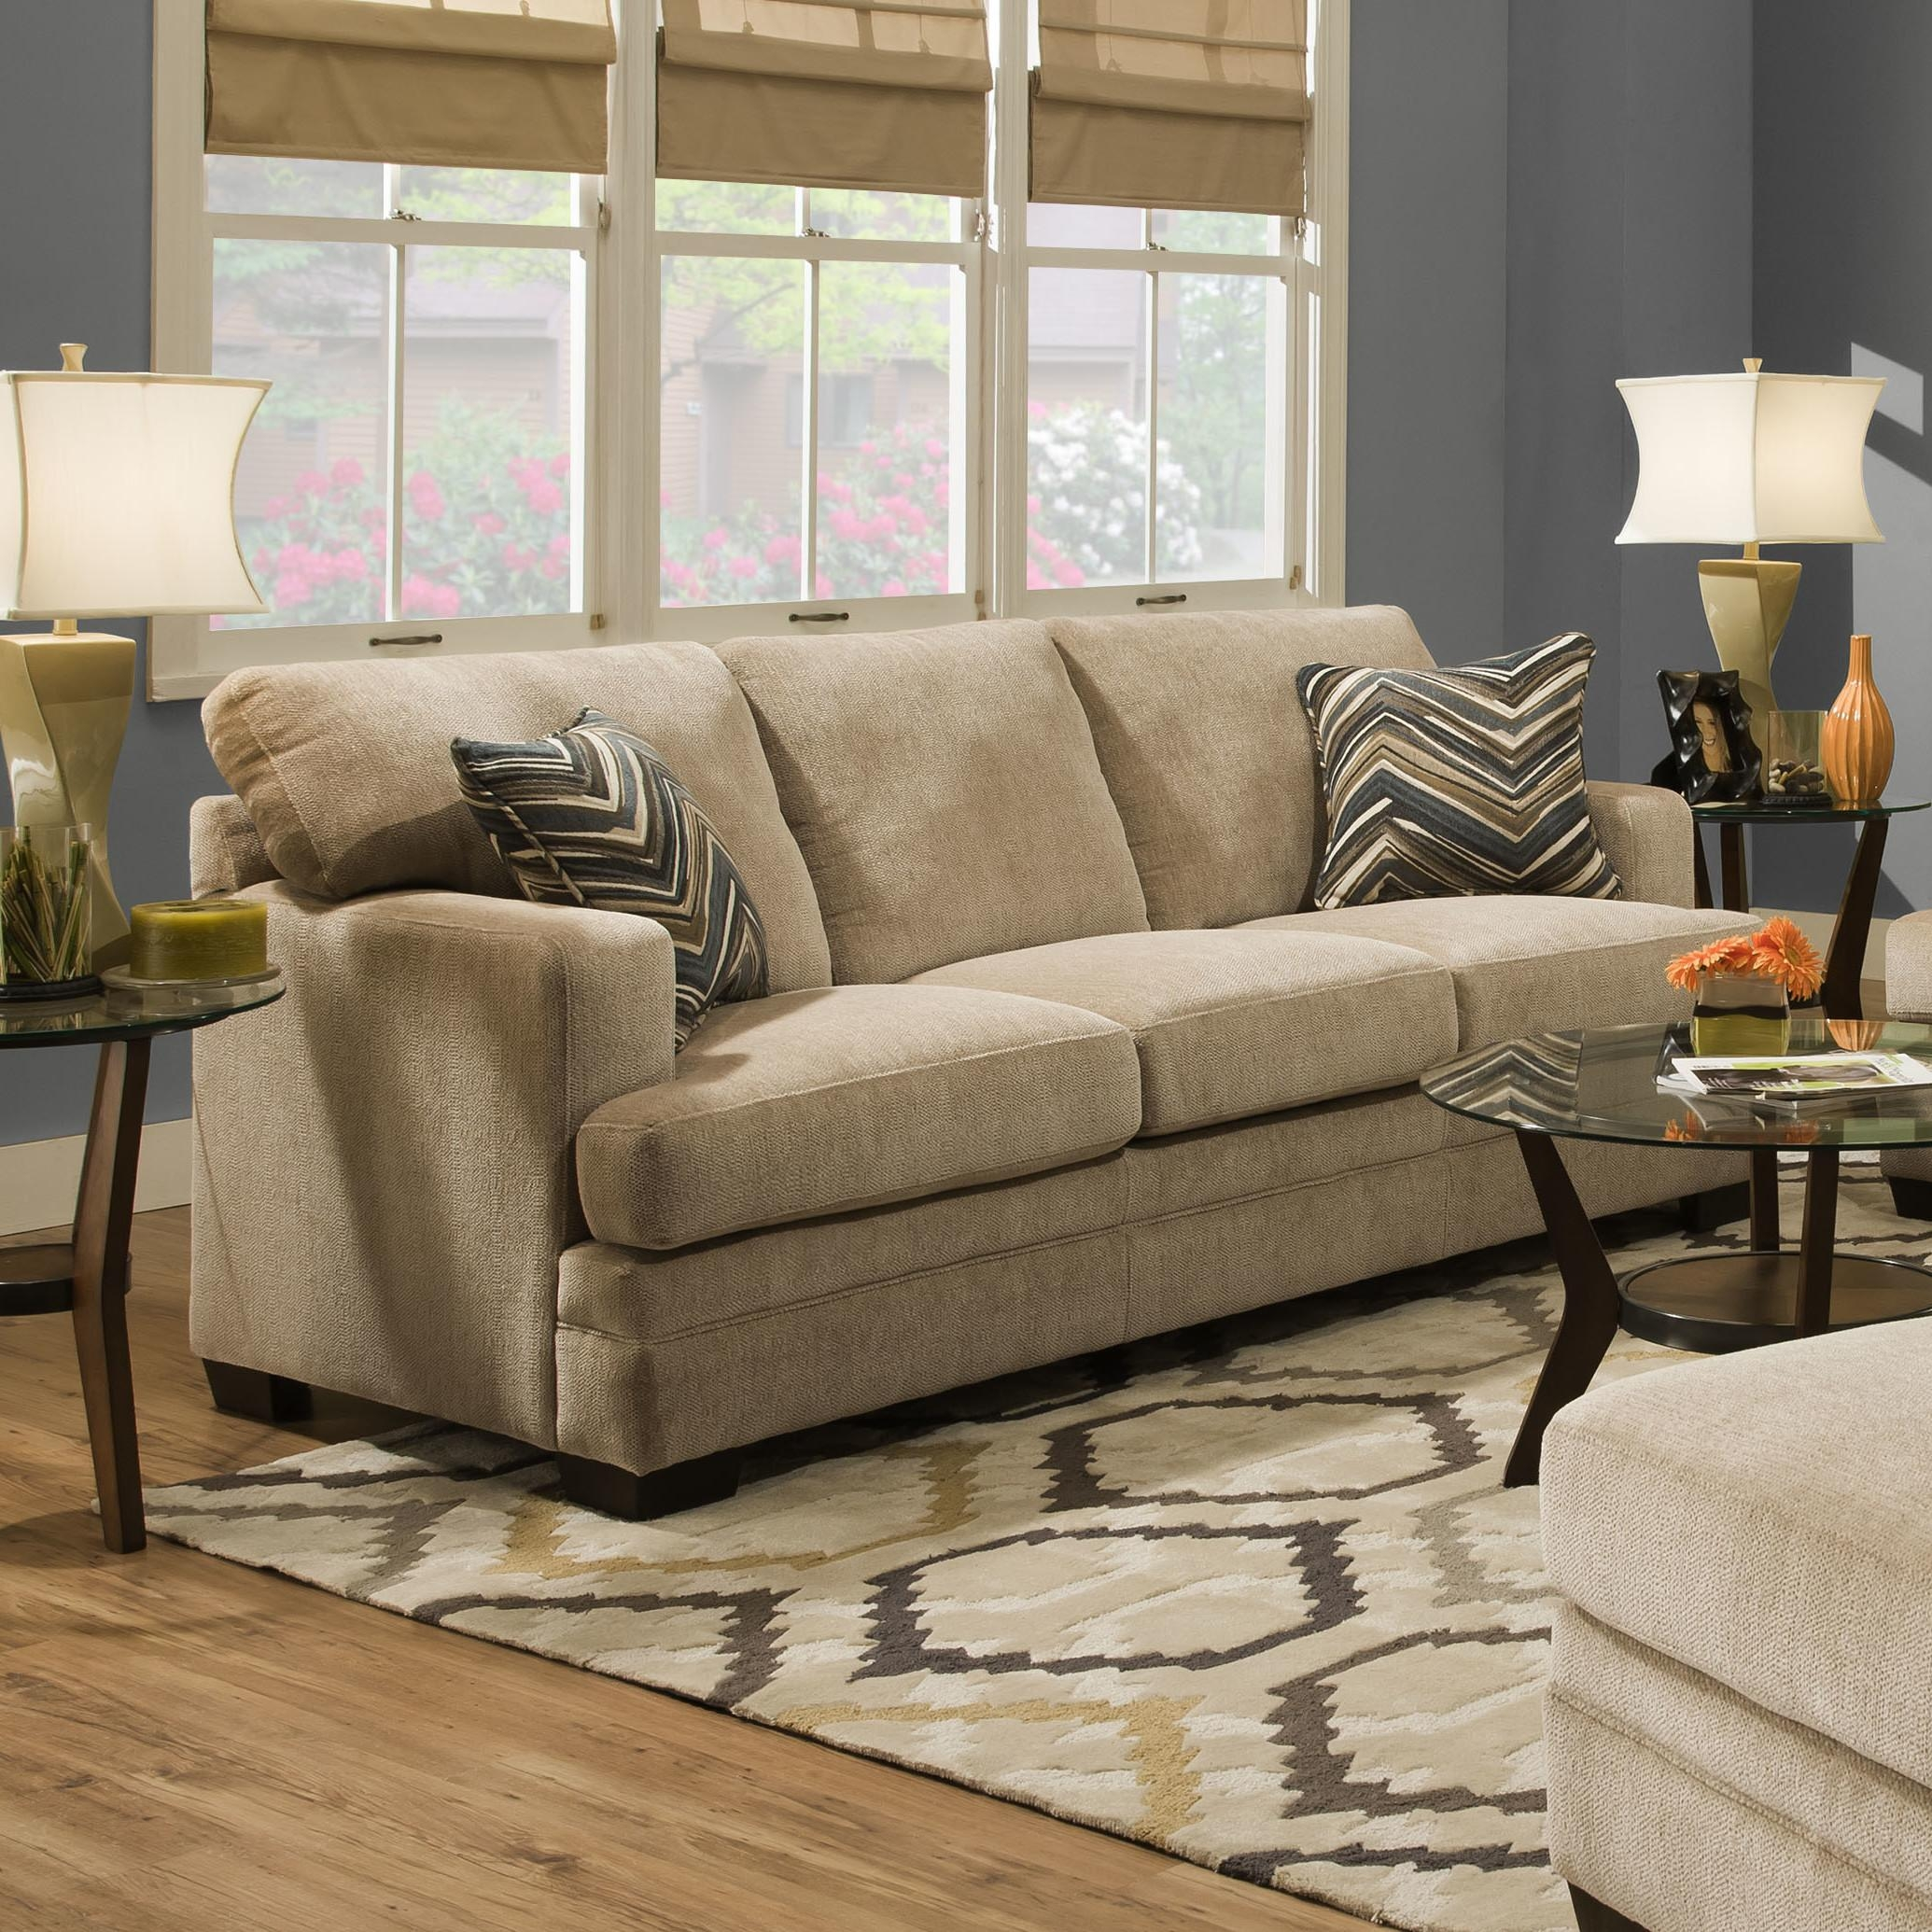 Simmons Sofas Reviews | Tehranmix Decoration With Regard To Simmons Sofas (View 5 of 20)